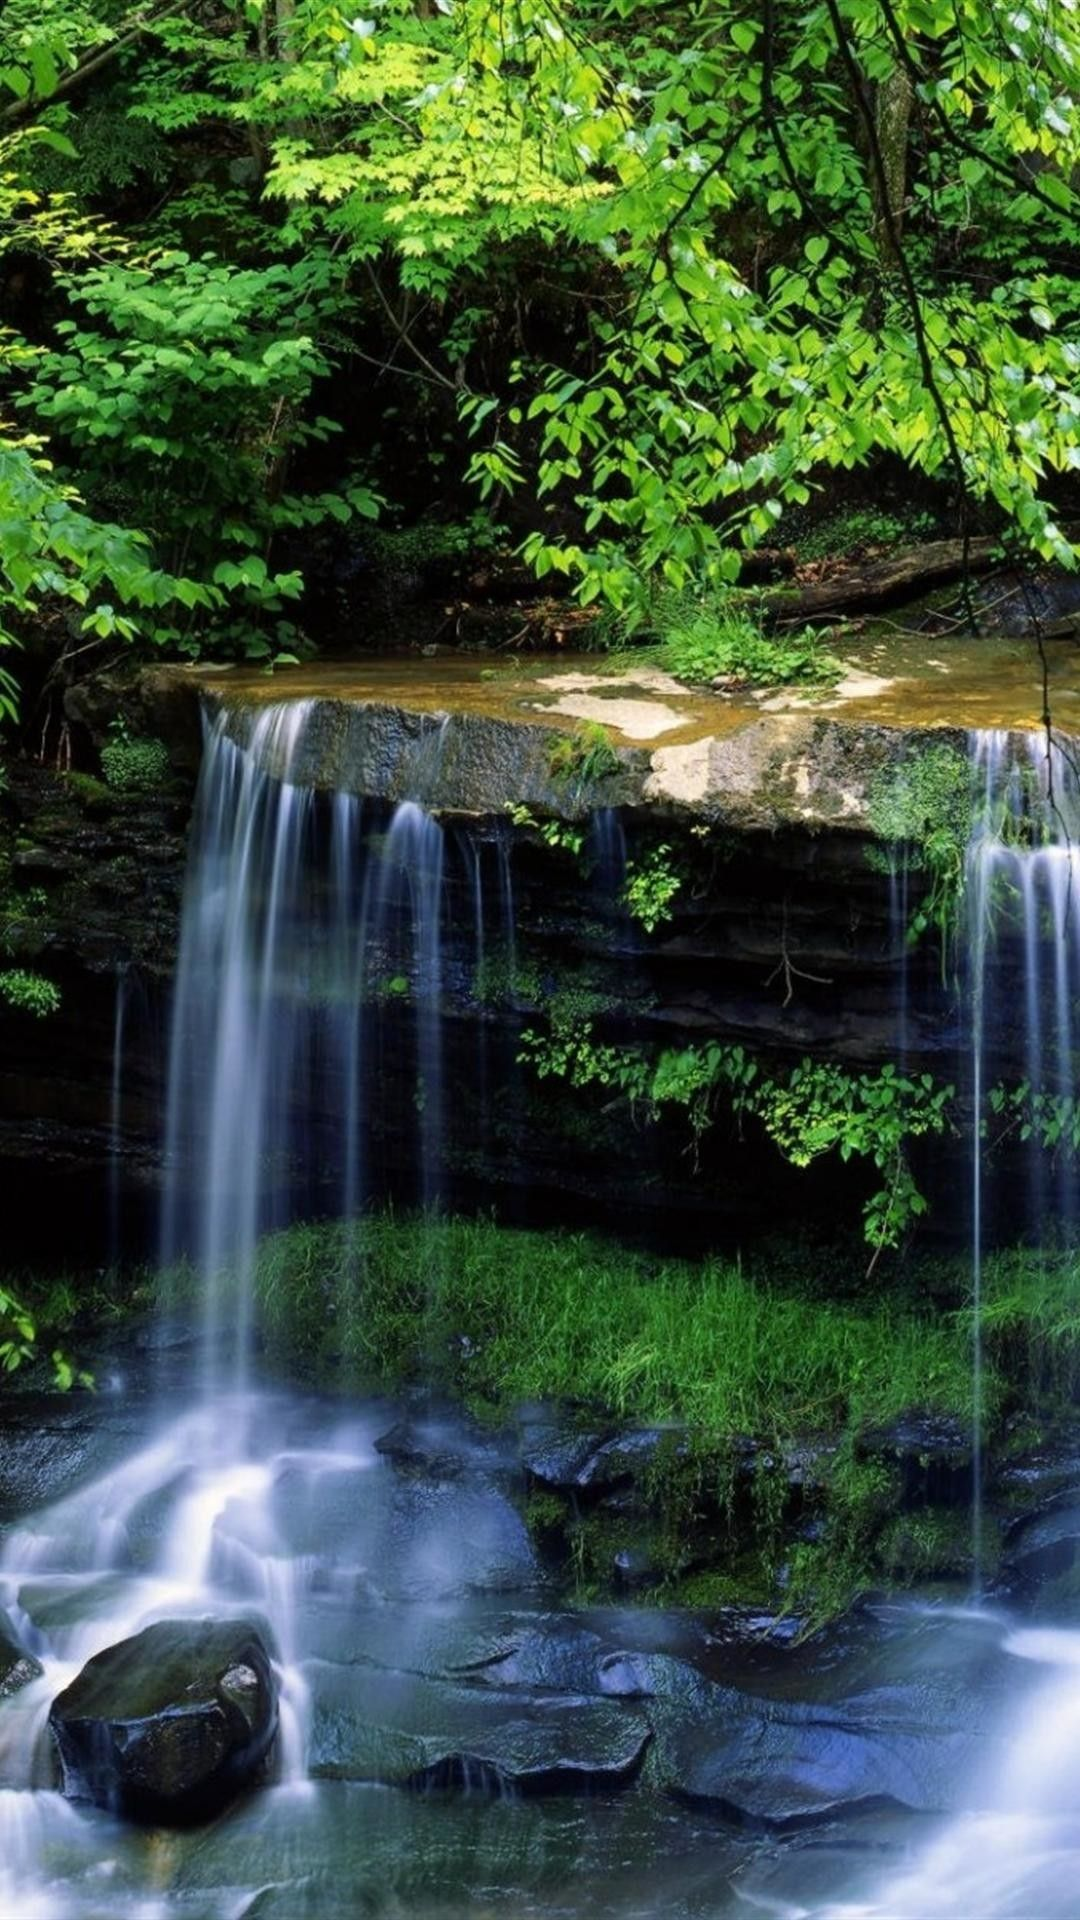 Waterfall, Water Resources, Body Of Water, Natural Landscape, Nature, Water